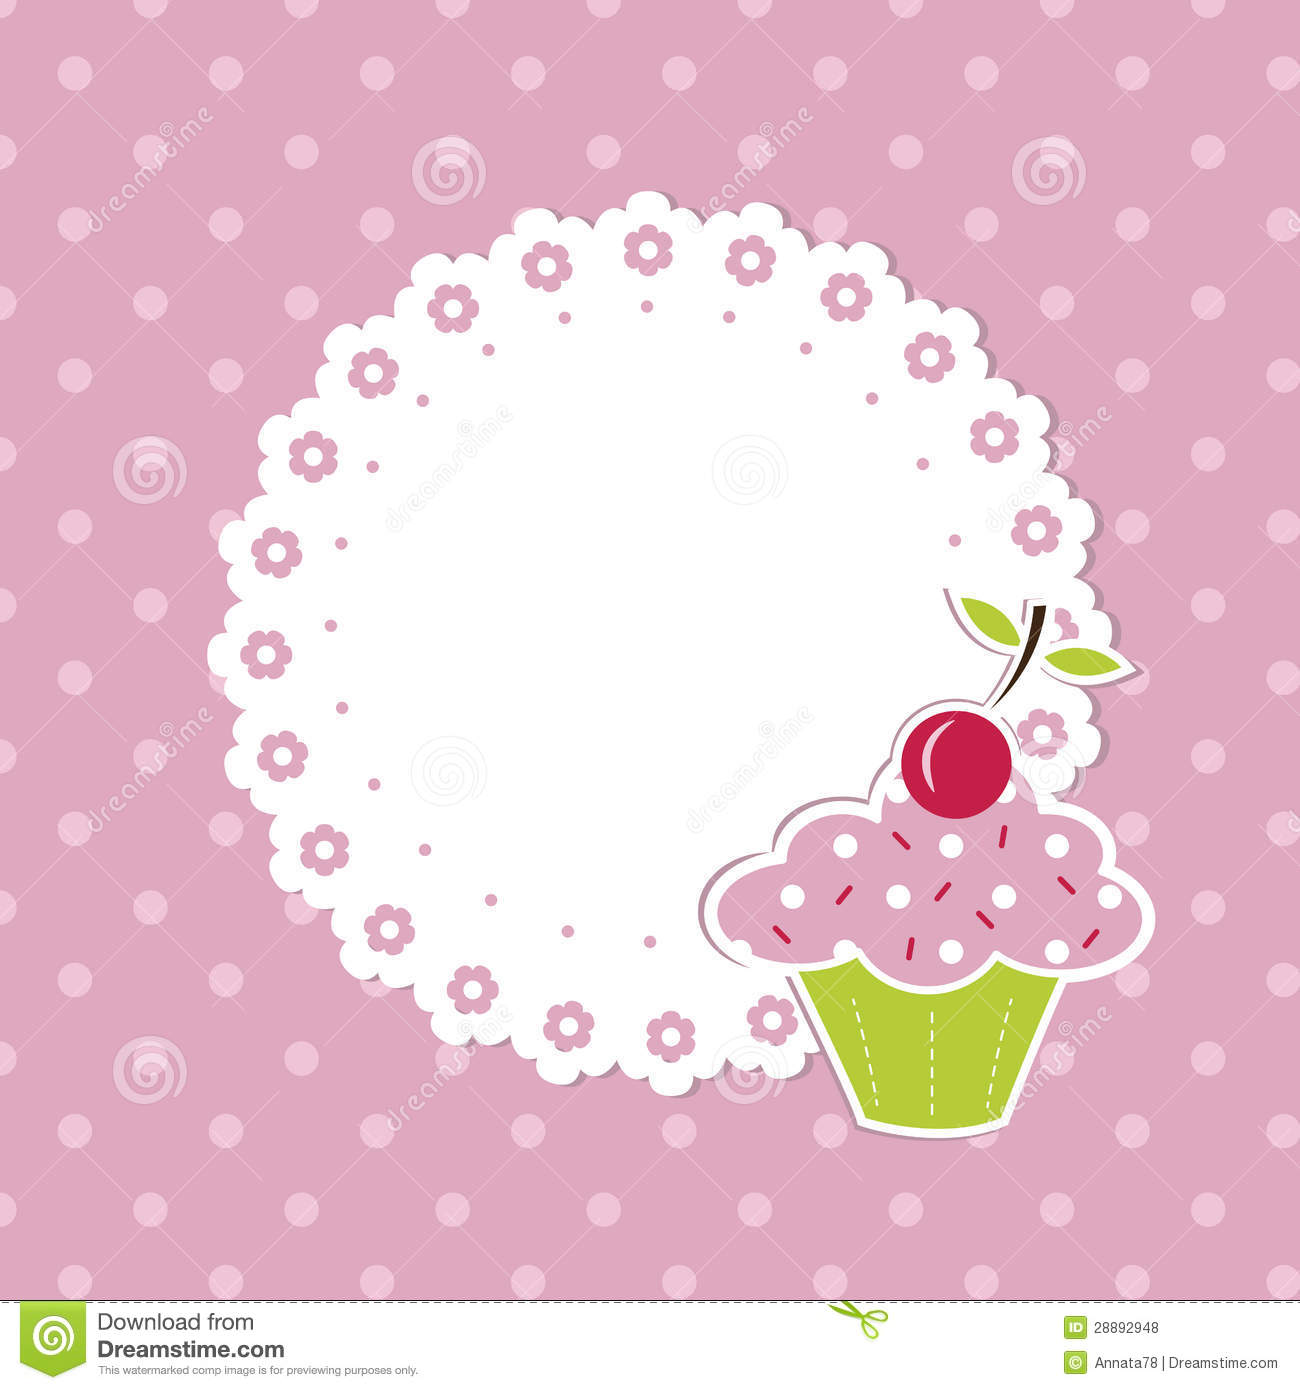 Cupcake Background Royalty Free Stock Photos - Image: 28892948